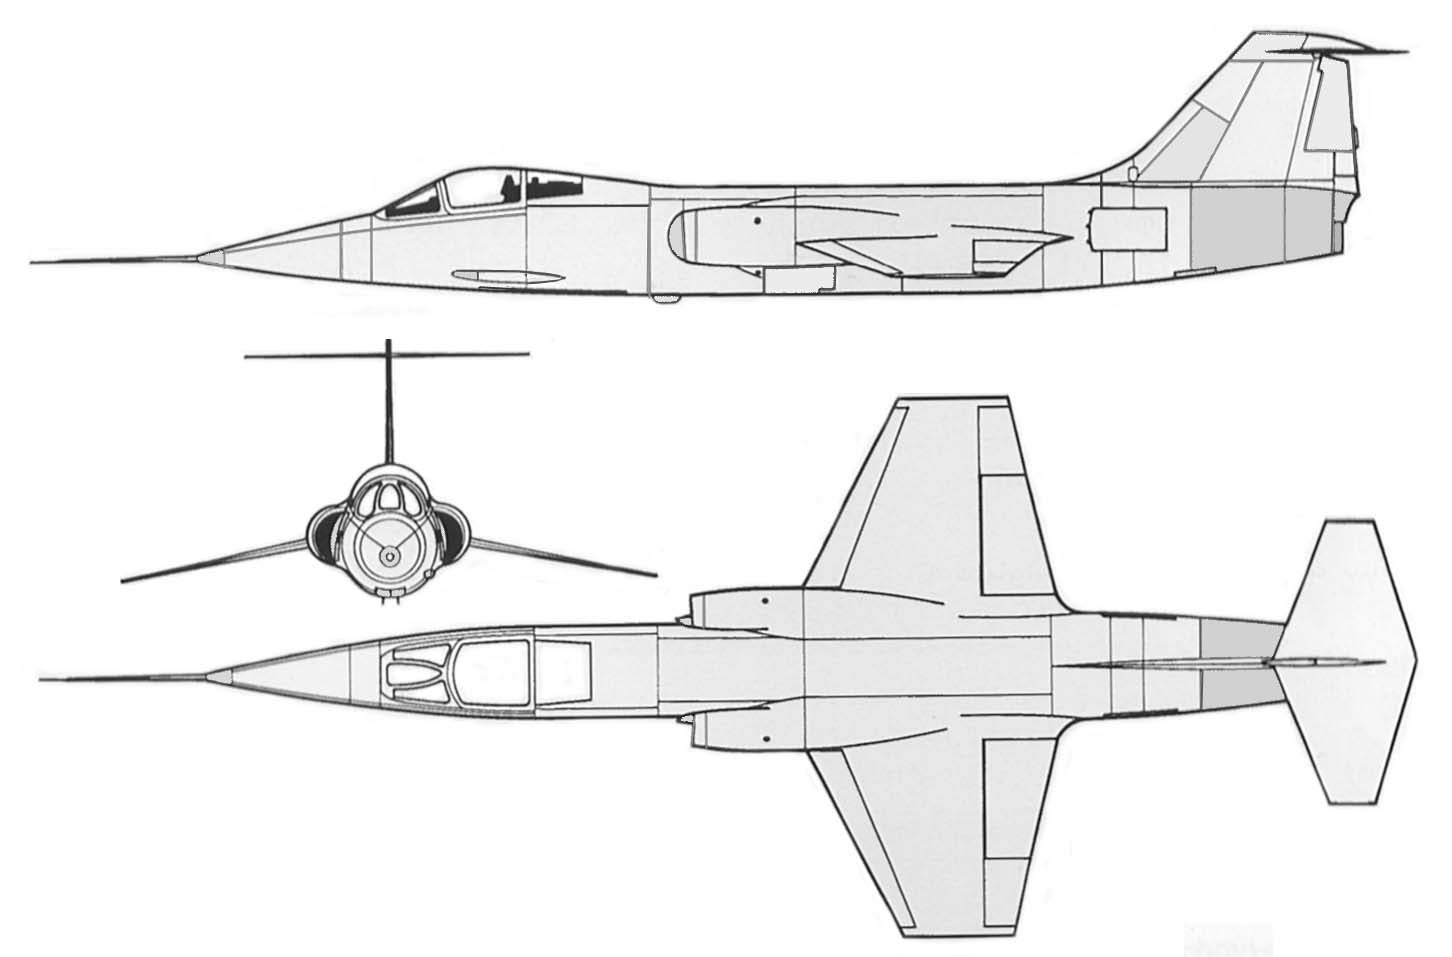 Line Drawing Jet : Lockheed xf military wiki fandom powered by wikia